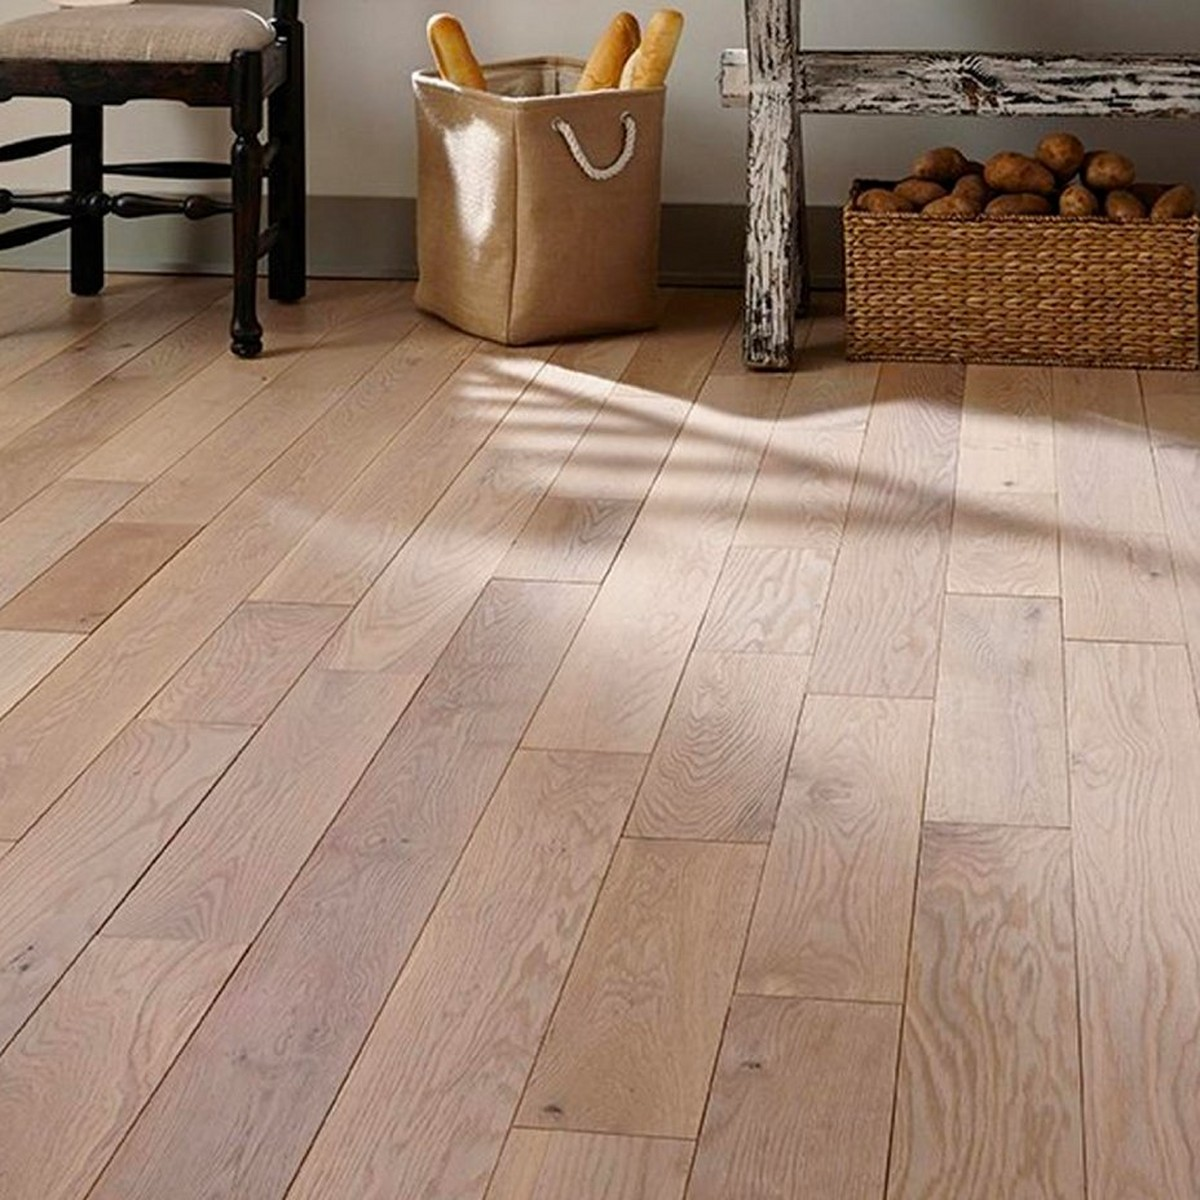 Floor Decor Wood Flooring: Laminate & Vinyl